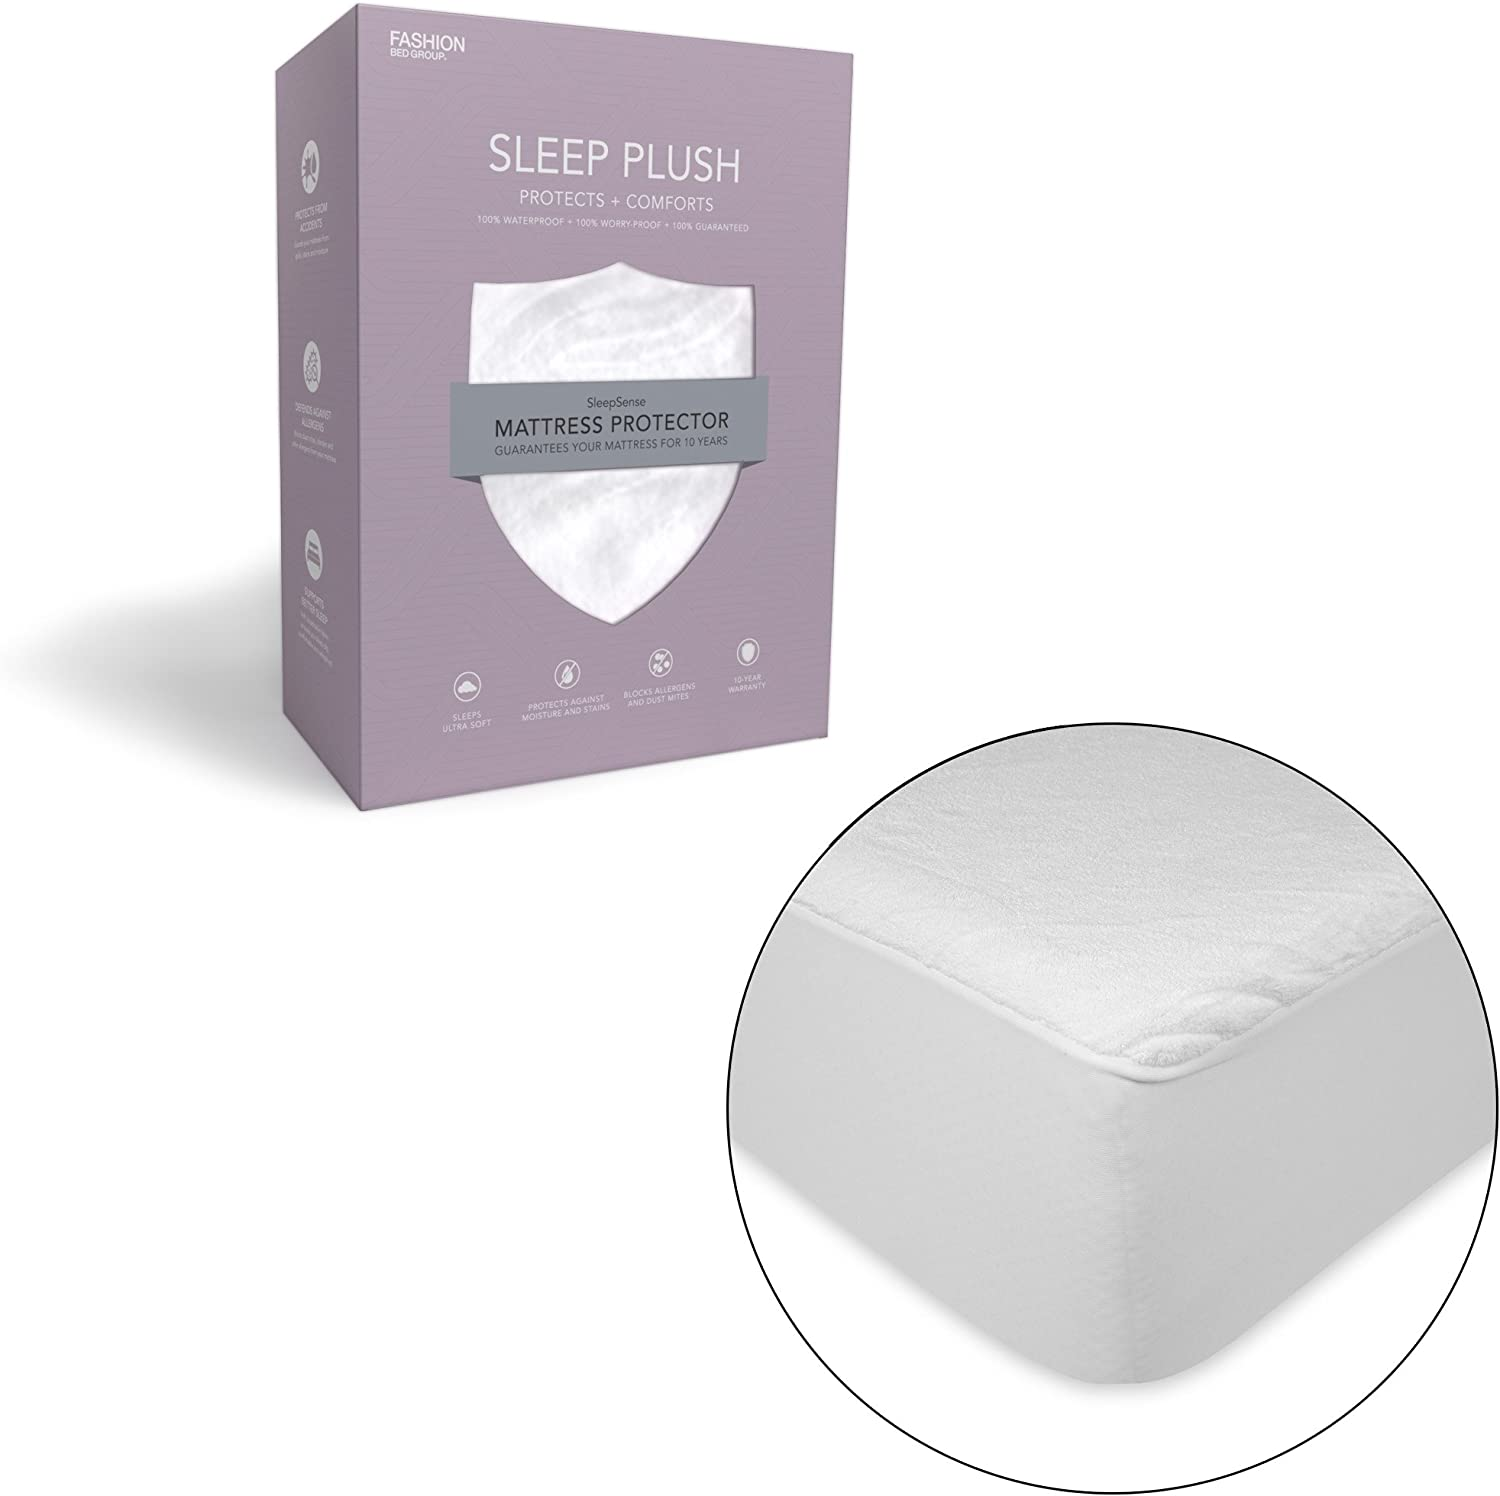 Sleep Plush Mattress Predector Bed Sheet with Ultra-Soft and Waterproof Fabric, Queen